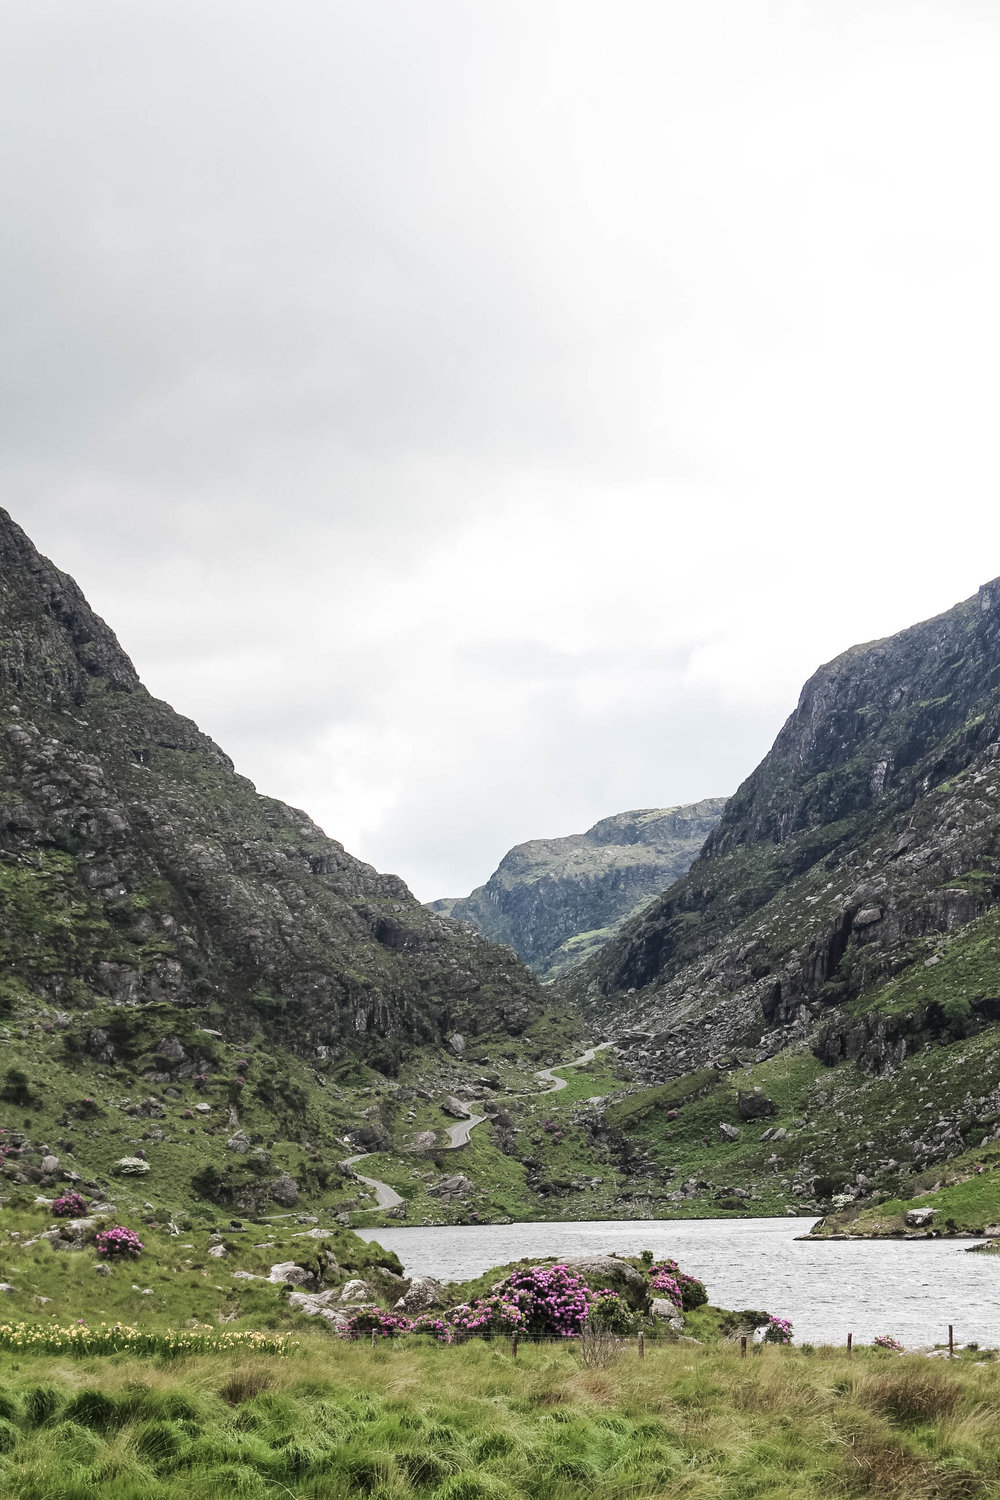 Gap of Dunloe near Killarney, Ireland - Things to do in Ireland - True North Paper Co. Blog